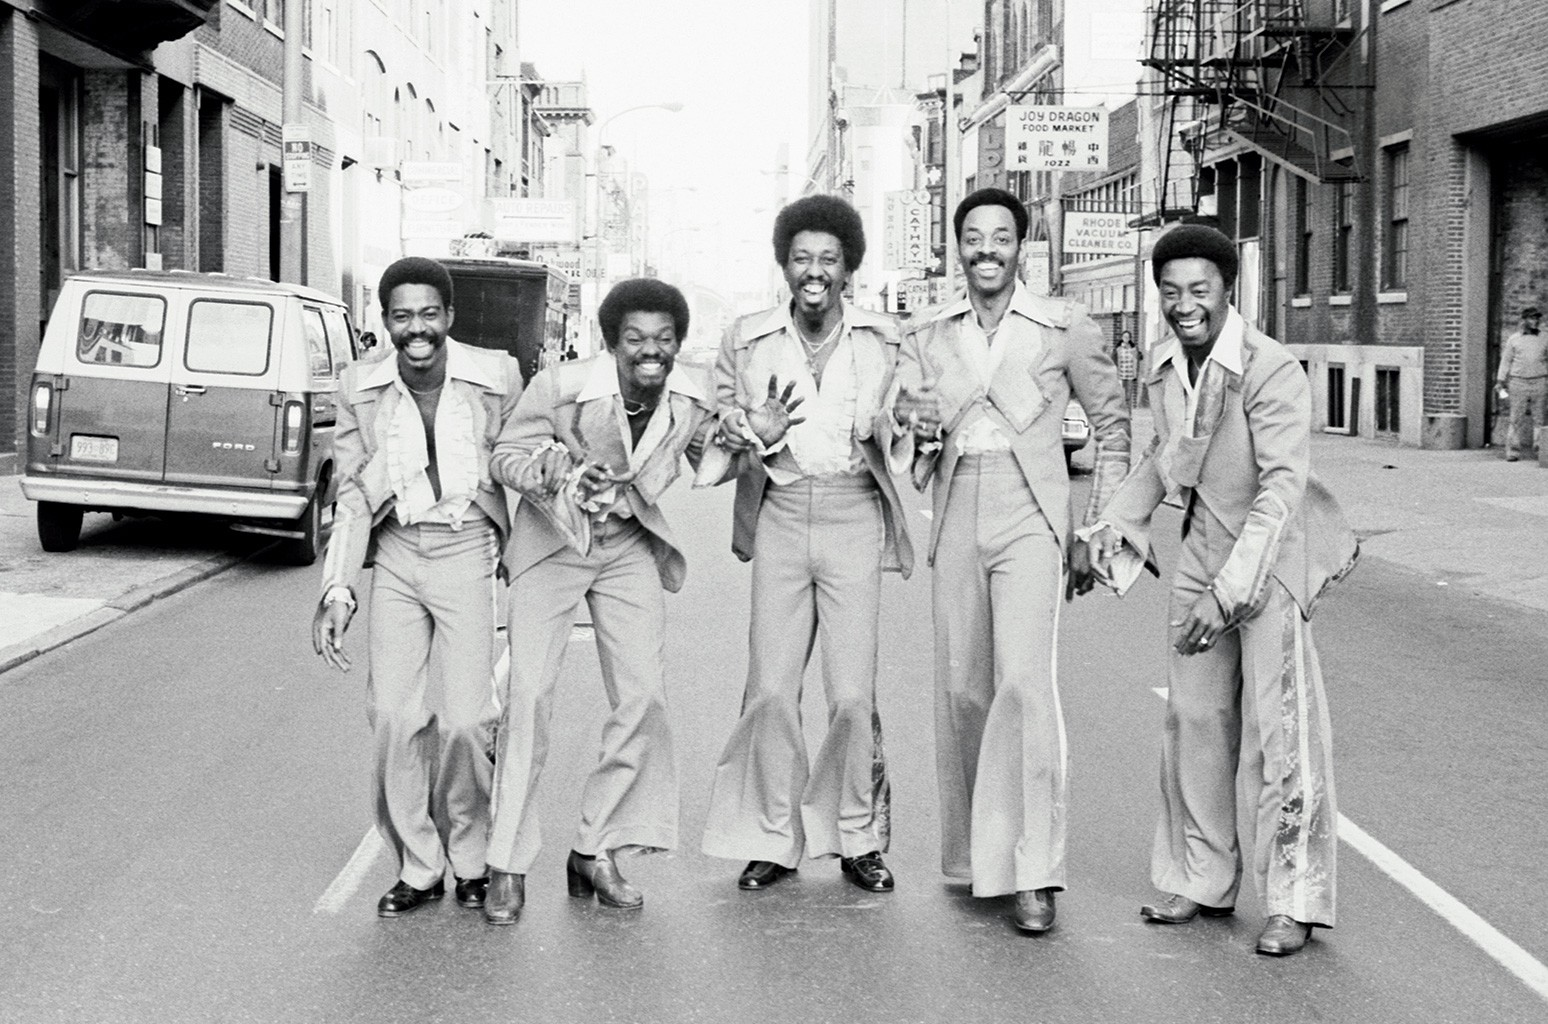 From left: Robert Upchurch, Stanley Wade, Harold Wade, Young and Jimmy Ellis of The Trammps in Philadelphia in 1977.